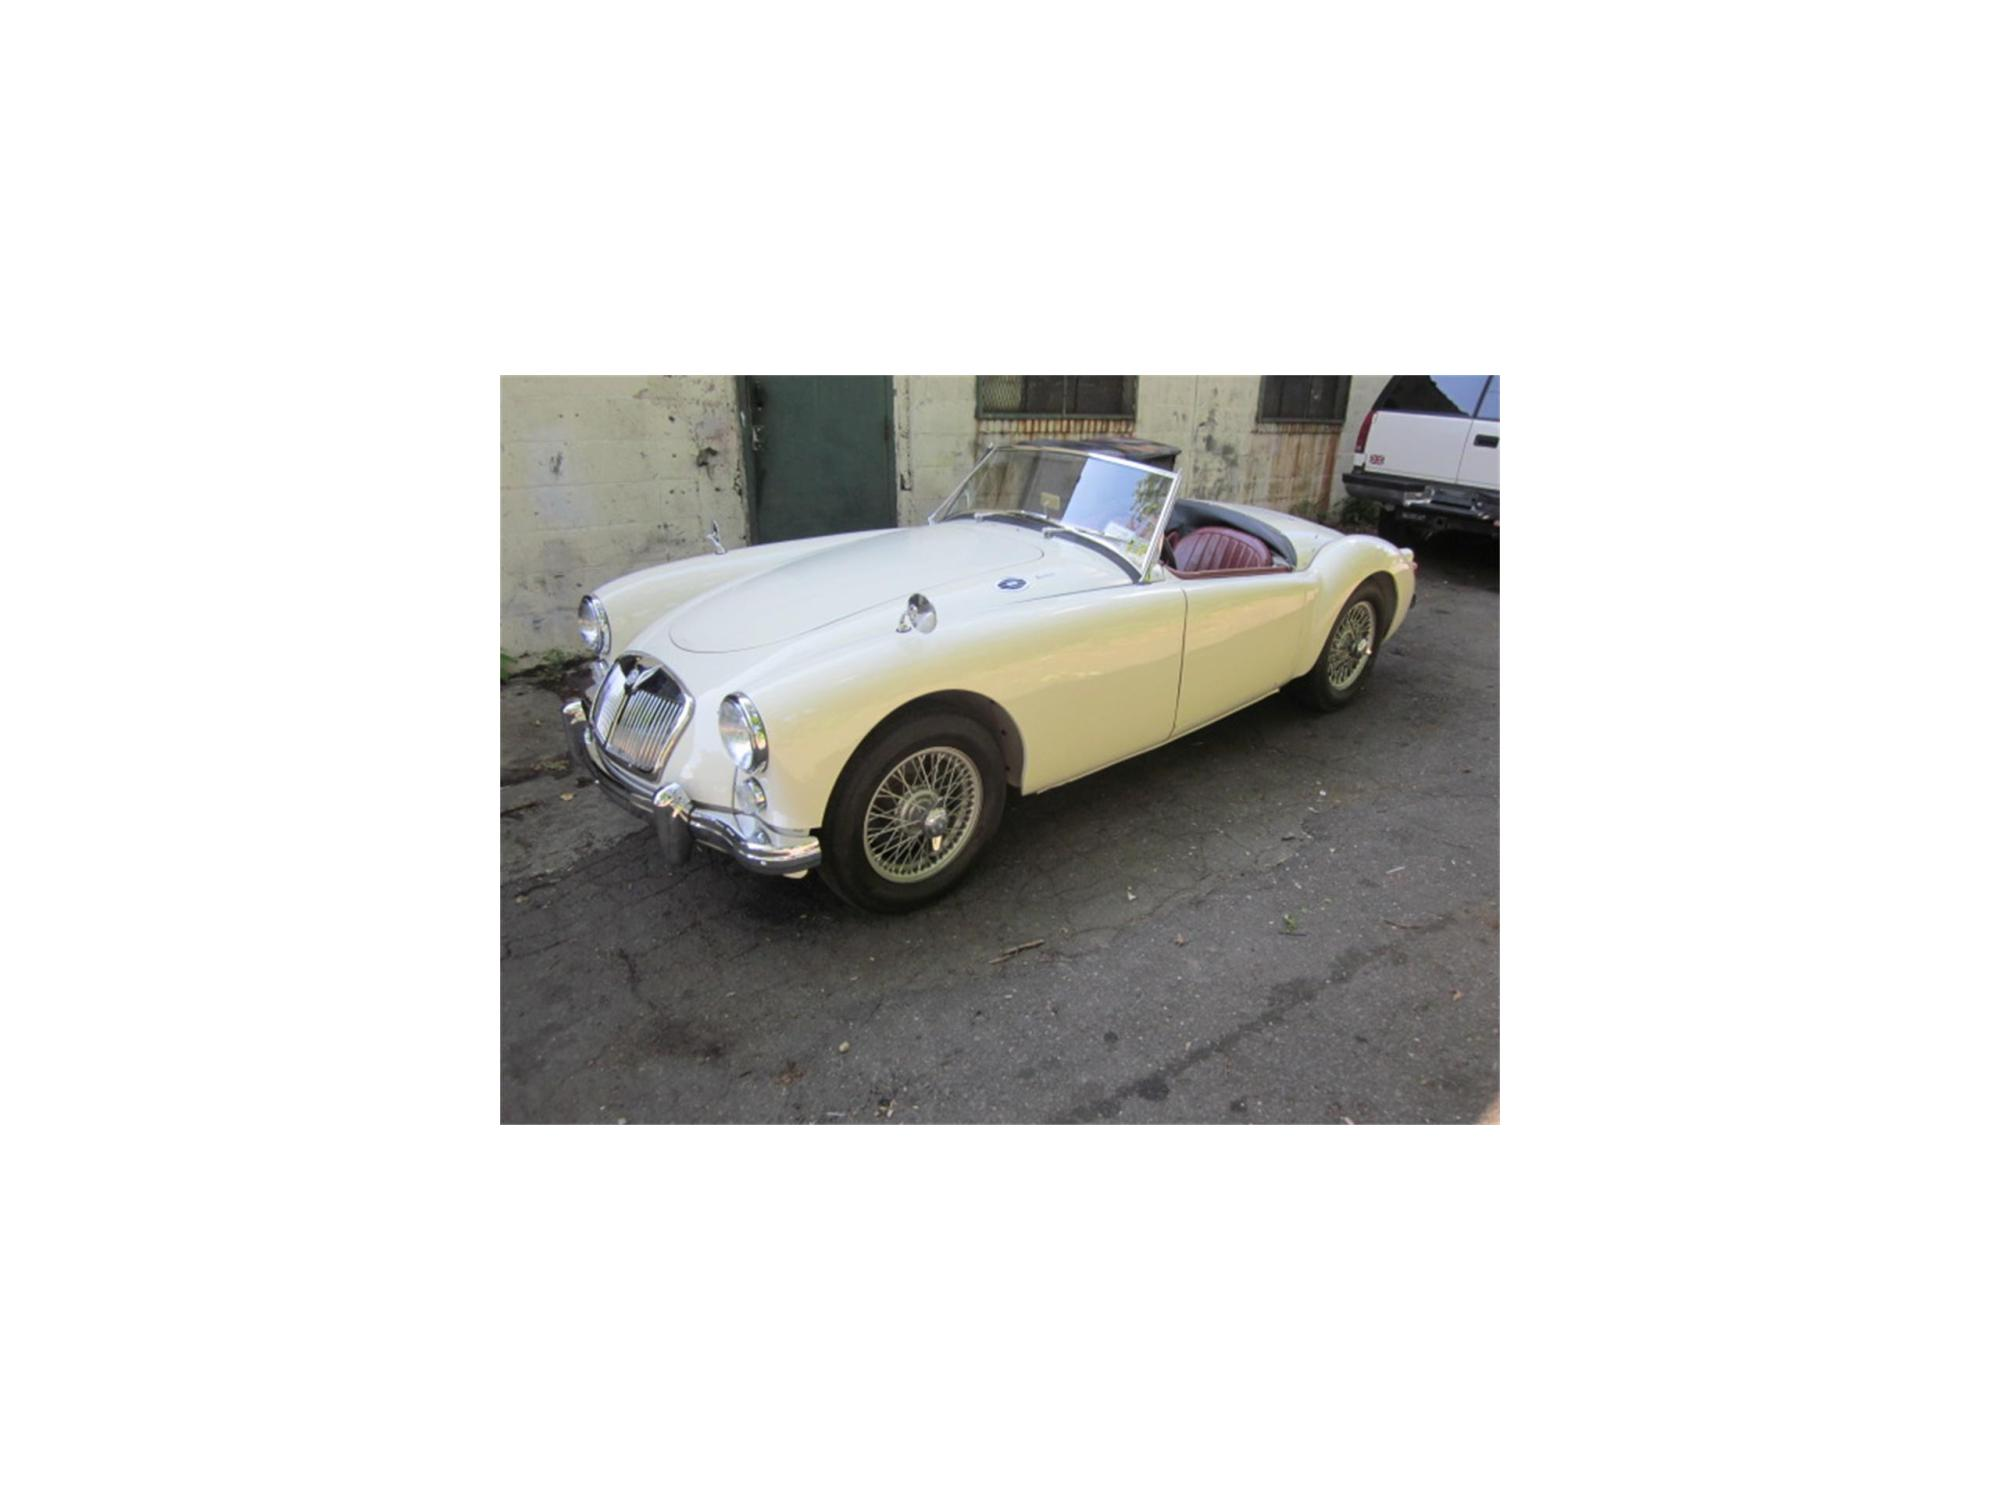 hight resolution of 1956 mga wiring diagram trusted wiring diagrams 1957 mga roadster wiring diagram